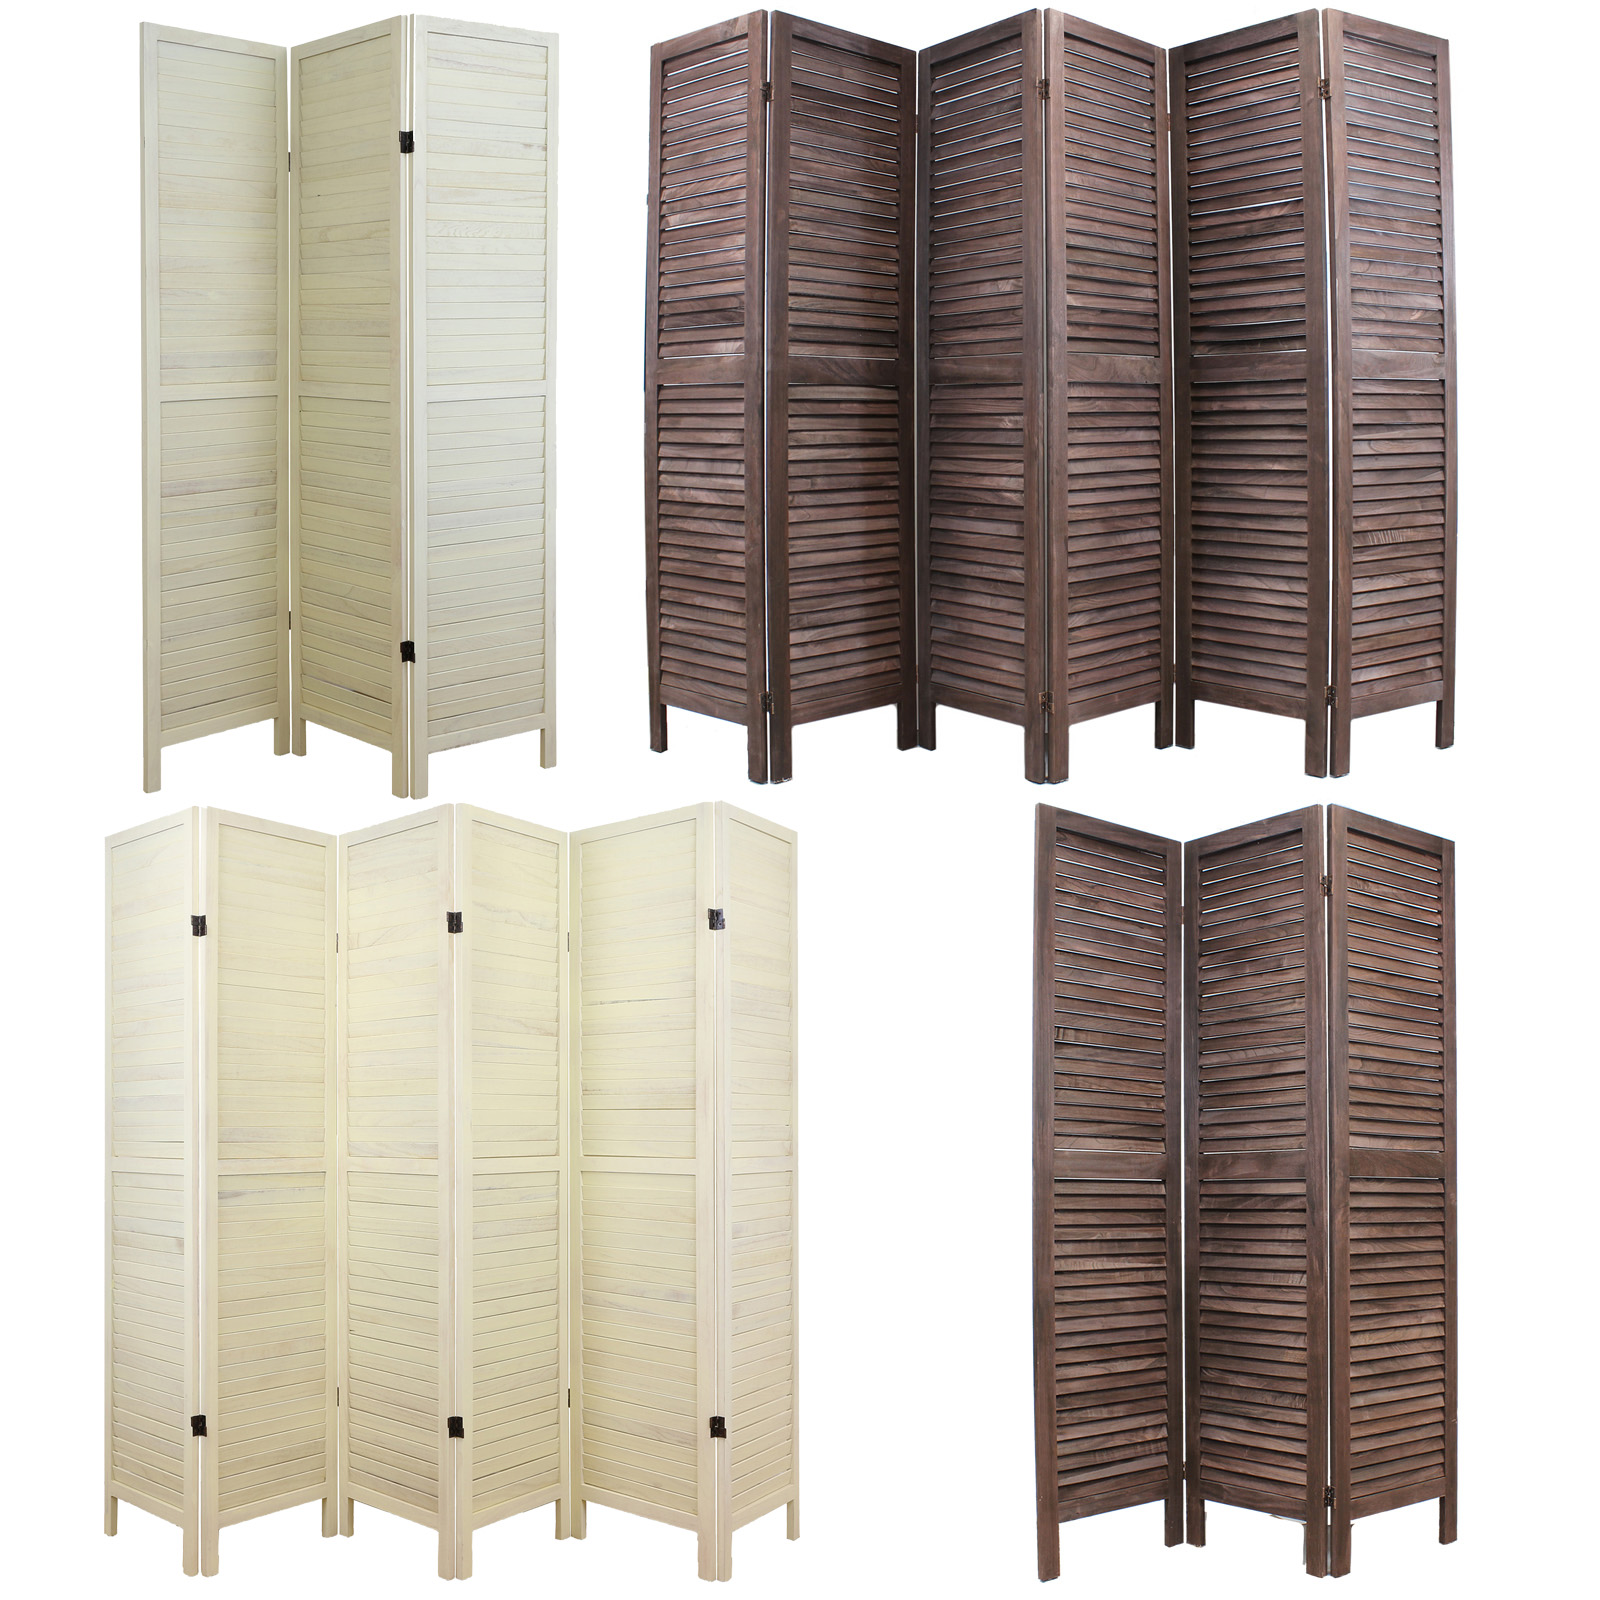 Wooden Room Dividers eBay